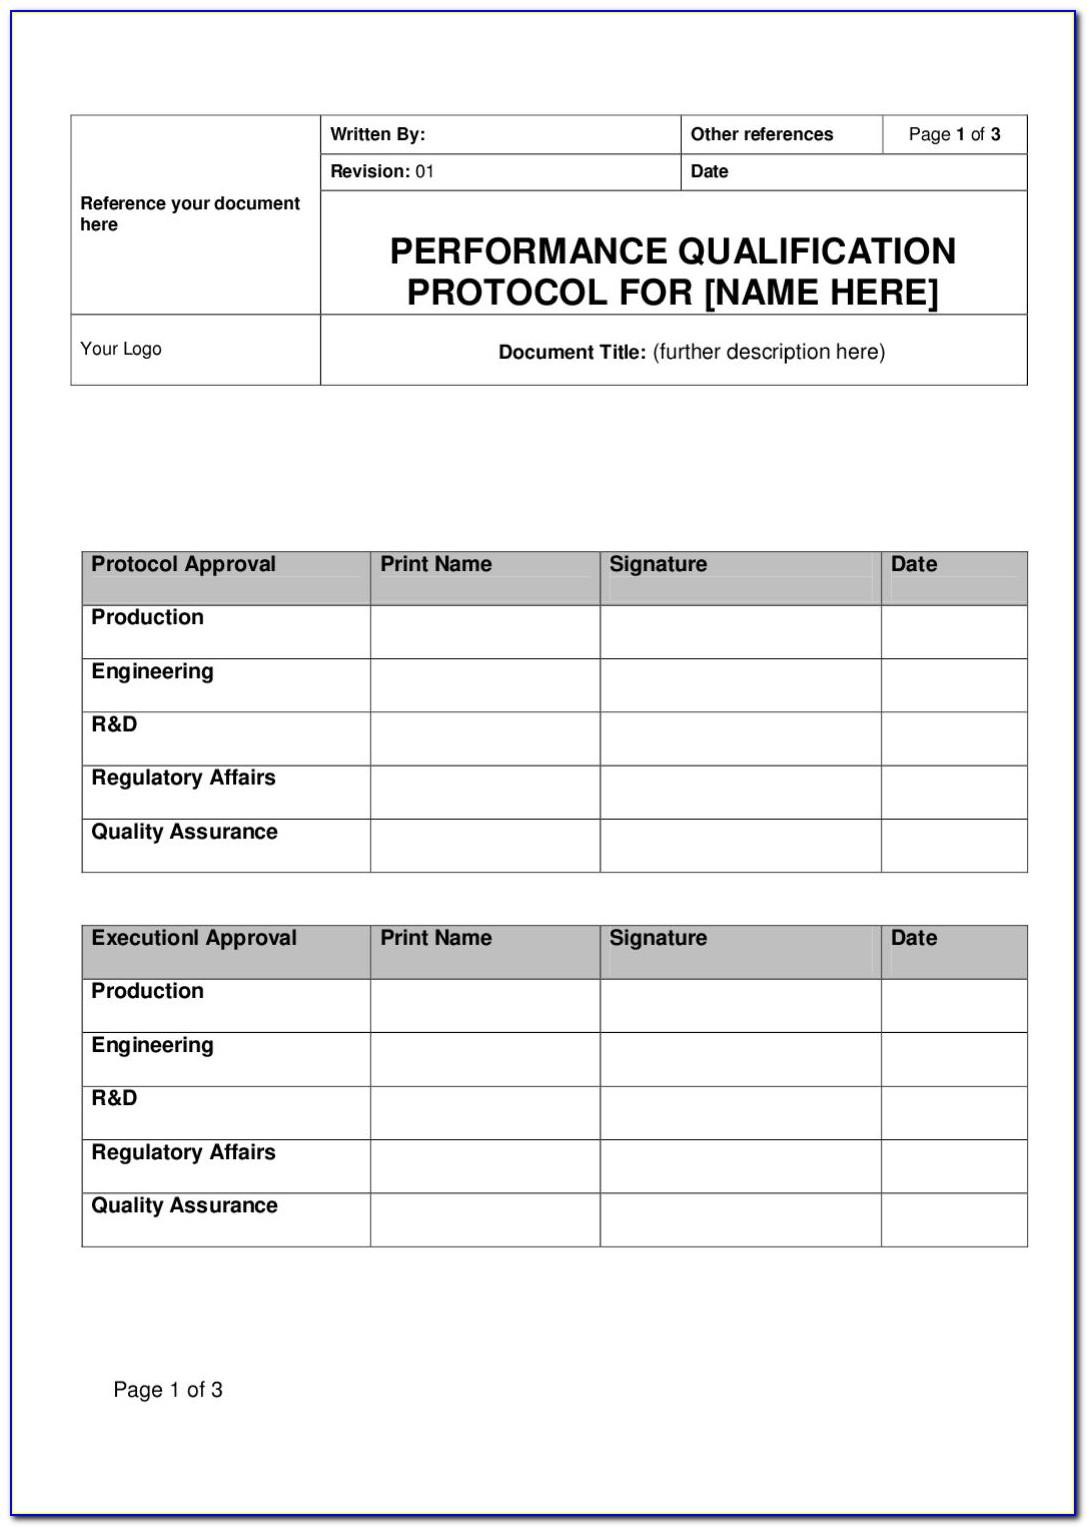 Iq Oq Pq Validation Plan